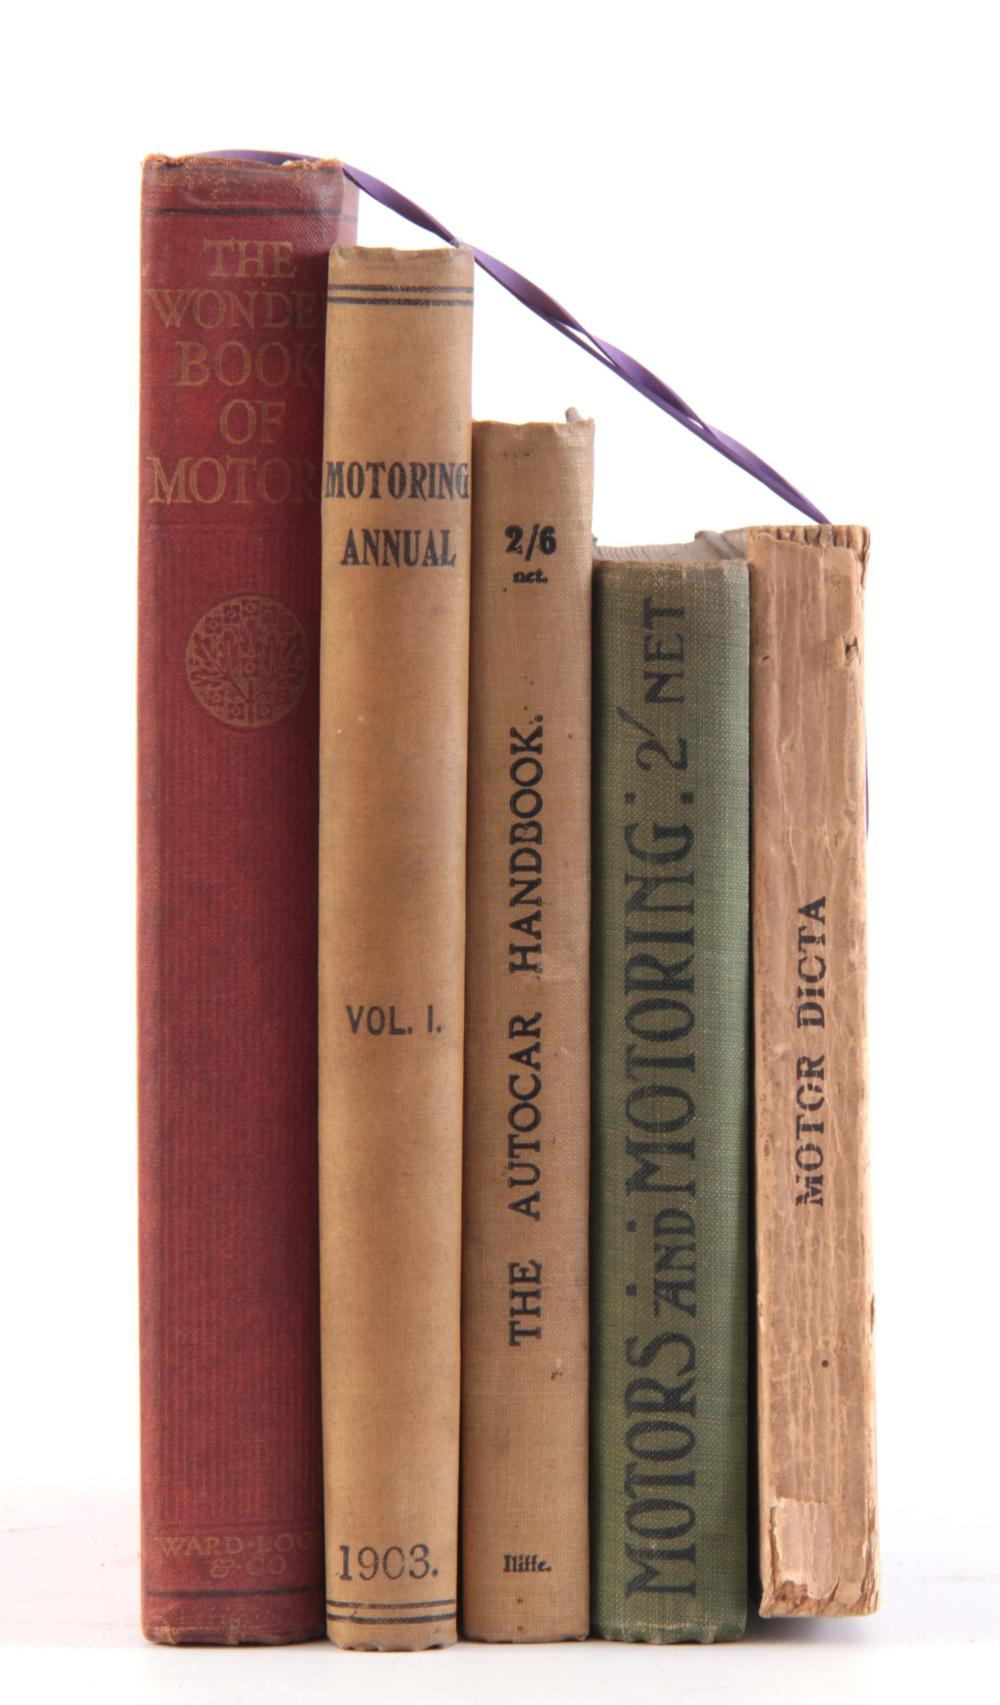 A COLLECTION OF 5 BOOKS including, MOTOR DICTA by